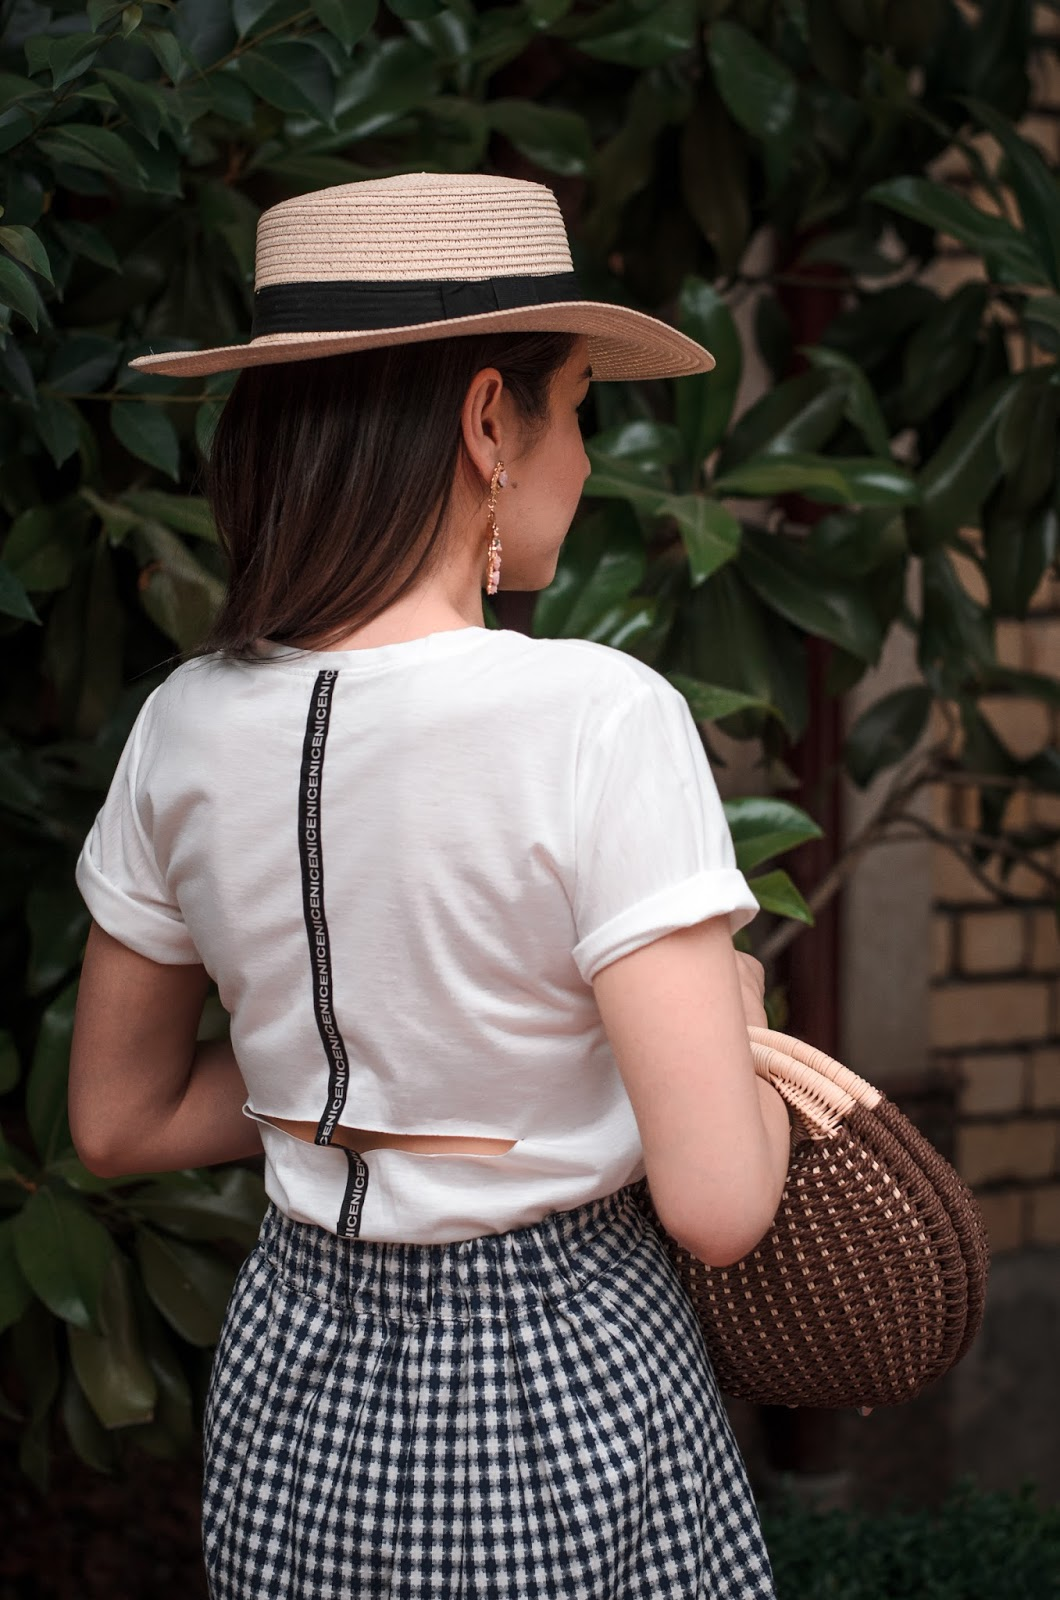 fashion blogger diyorasnotes diyora beta white t-shirt straw hat straw bag statement earrings